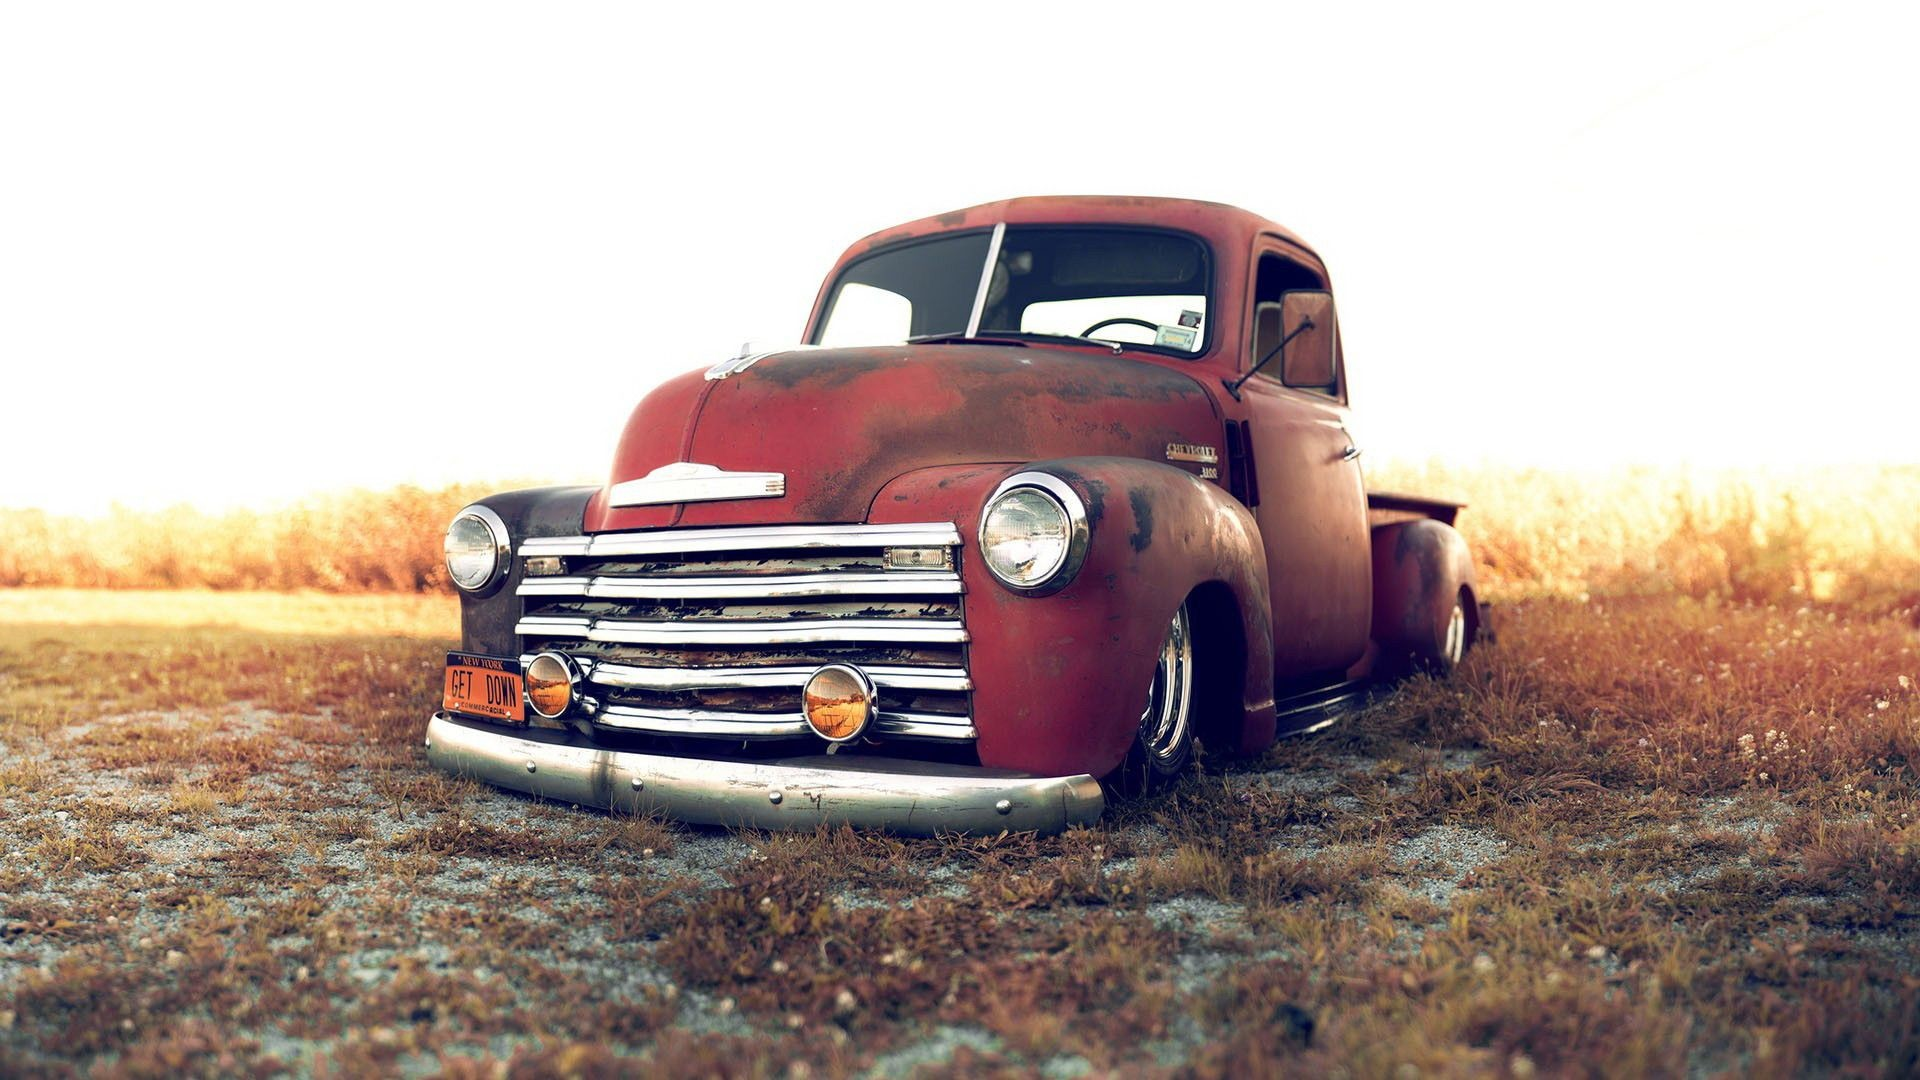 1920x1080 Collection of Chevy Truck Wallpaper on HDWallpapers